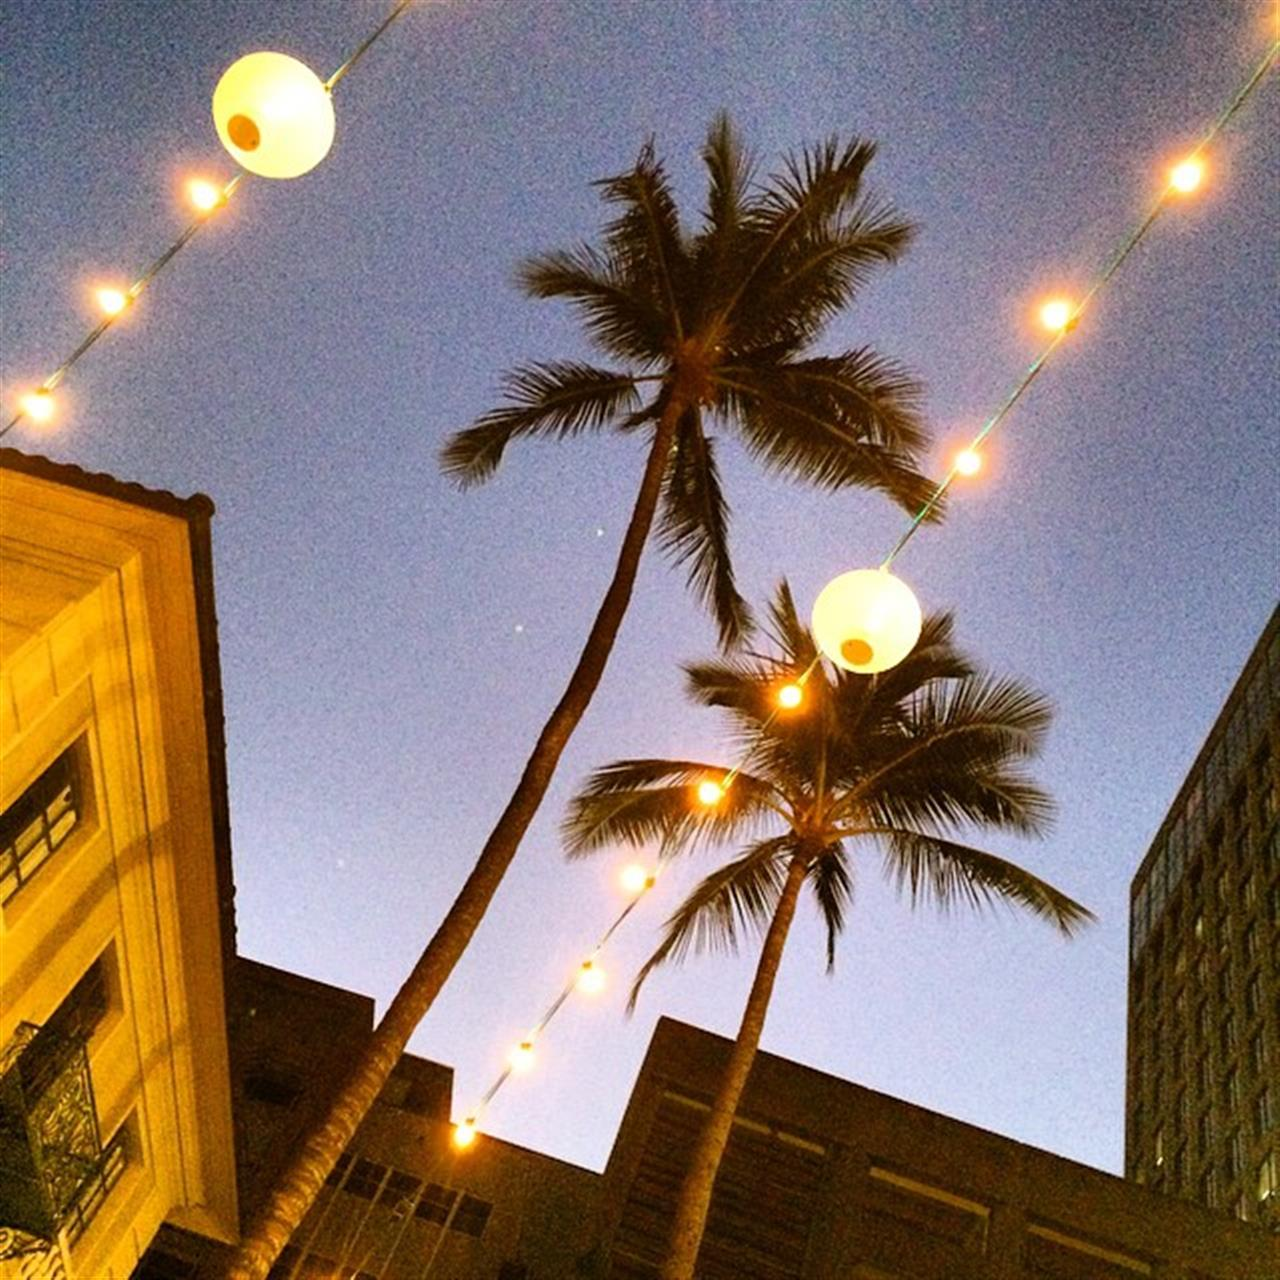 Honolulu City lights! This little farm girl is loving her city time! ?????? #beingbrooke #hawaiilife #oahulife #leadingRElocal